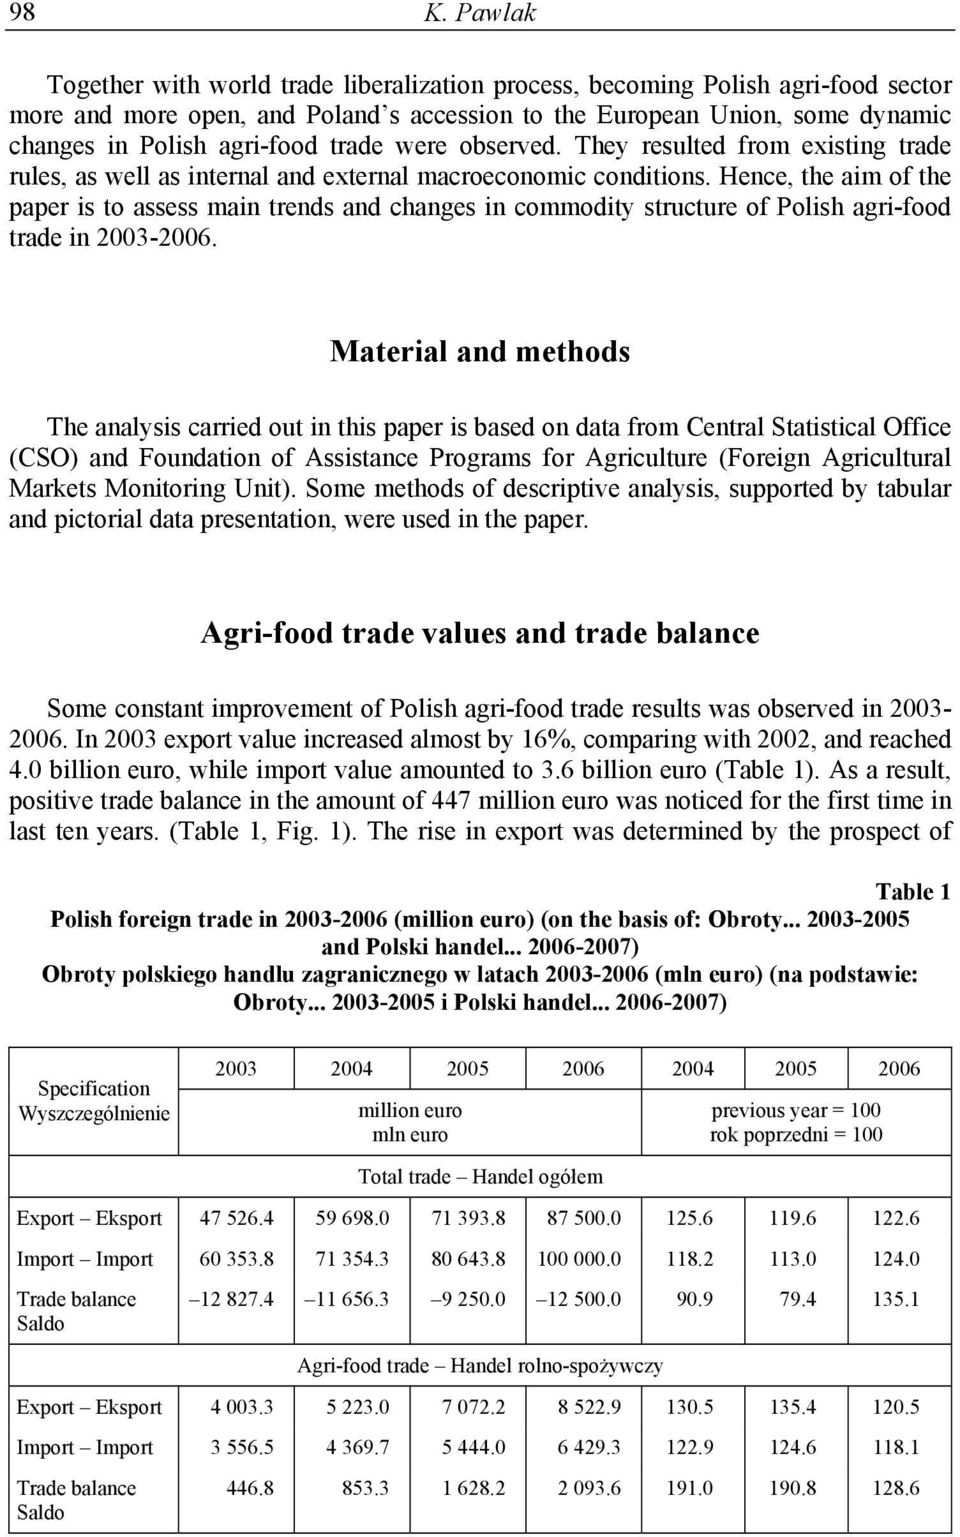 Hence, the aim of the paper is to assess main trends and changes in commodity structure of Polish agri-food trade in 2003-2006.